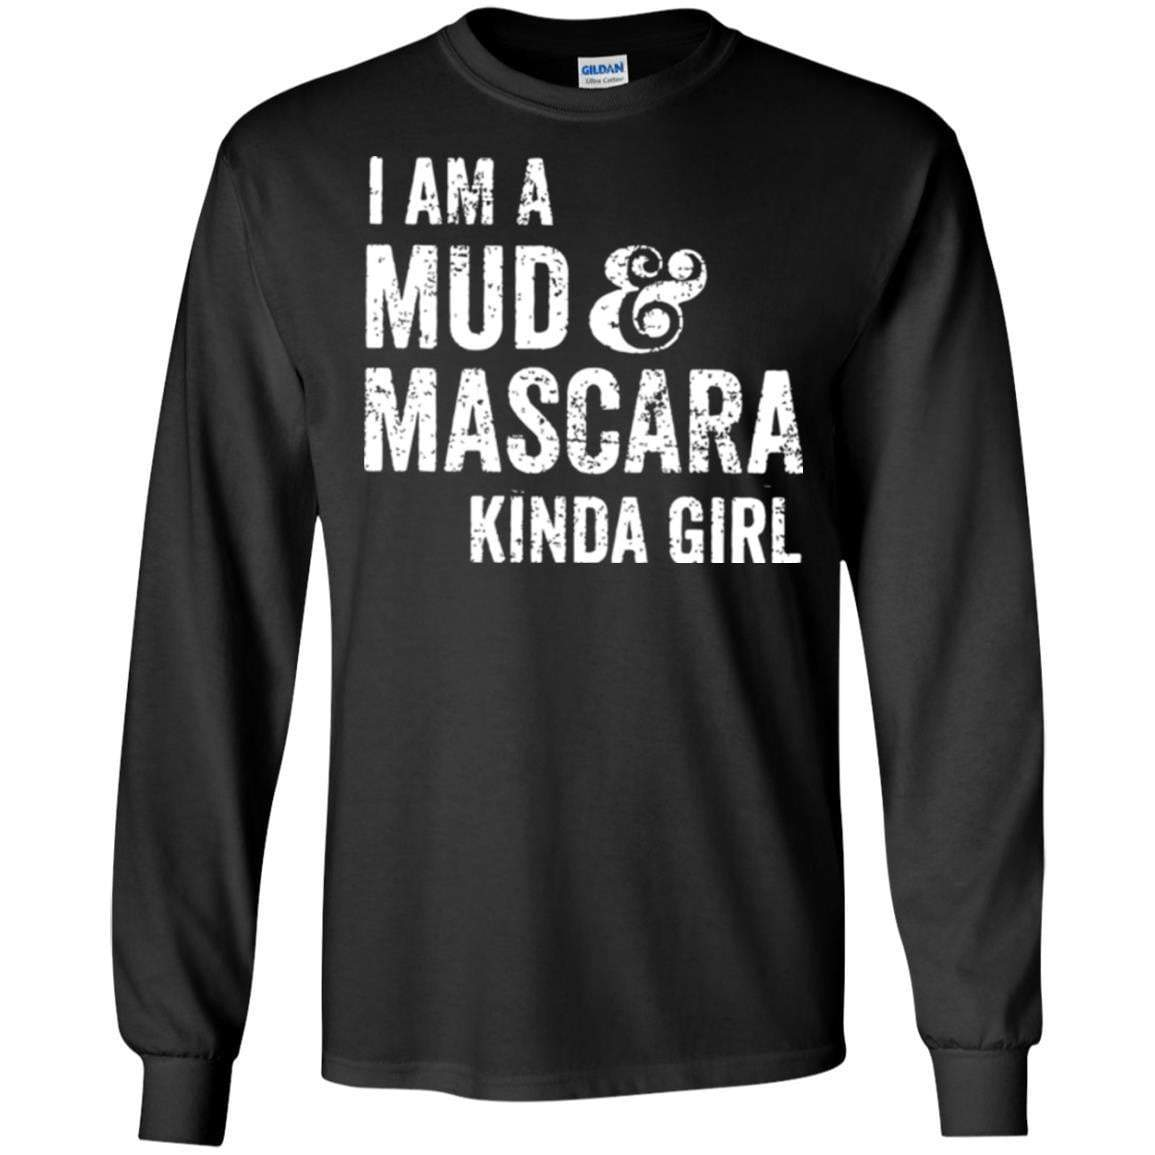 Mud and Mascara